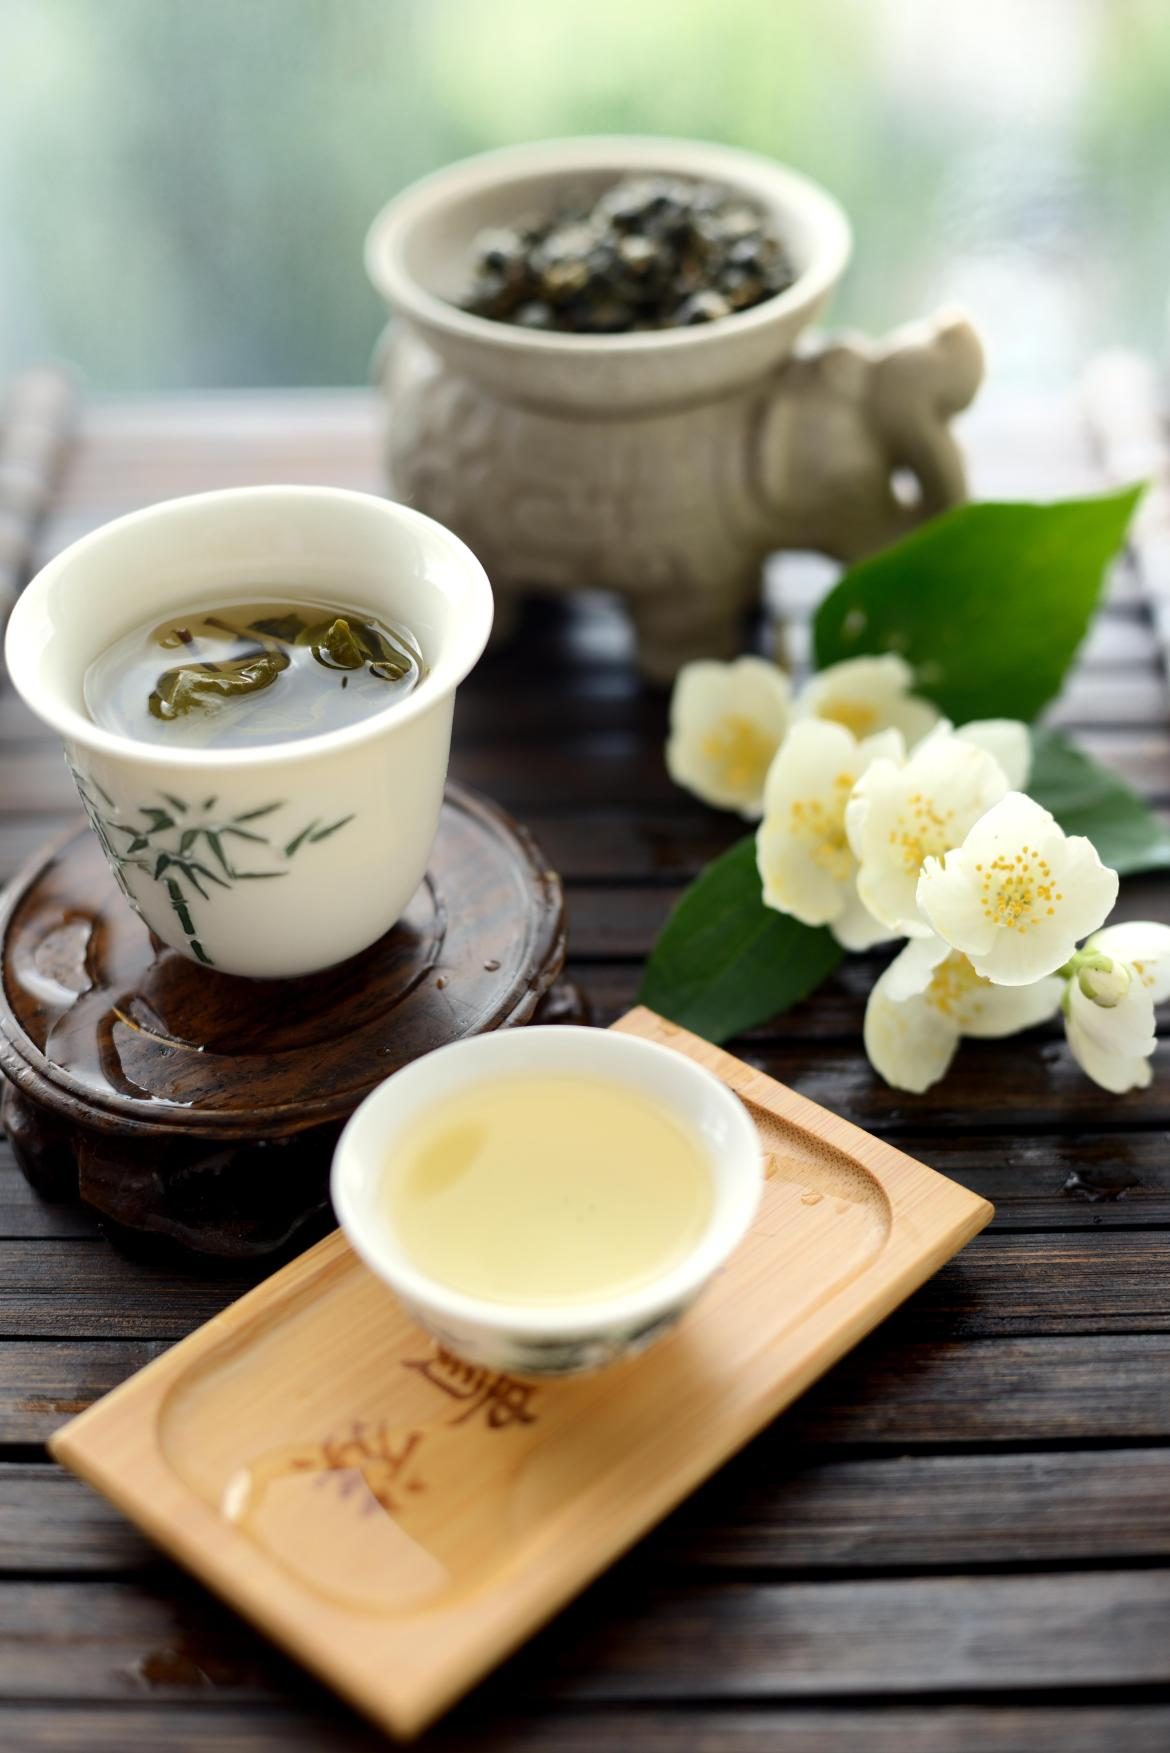 Oolong tea can boost your metabolism while you sleep